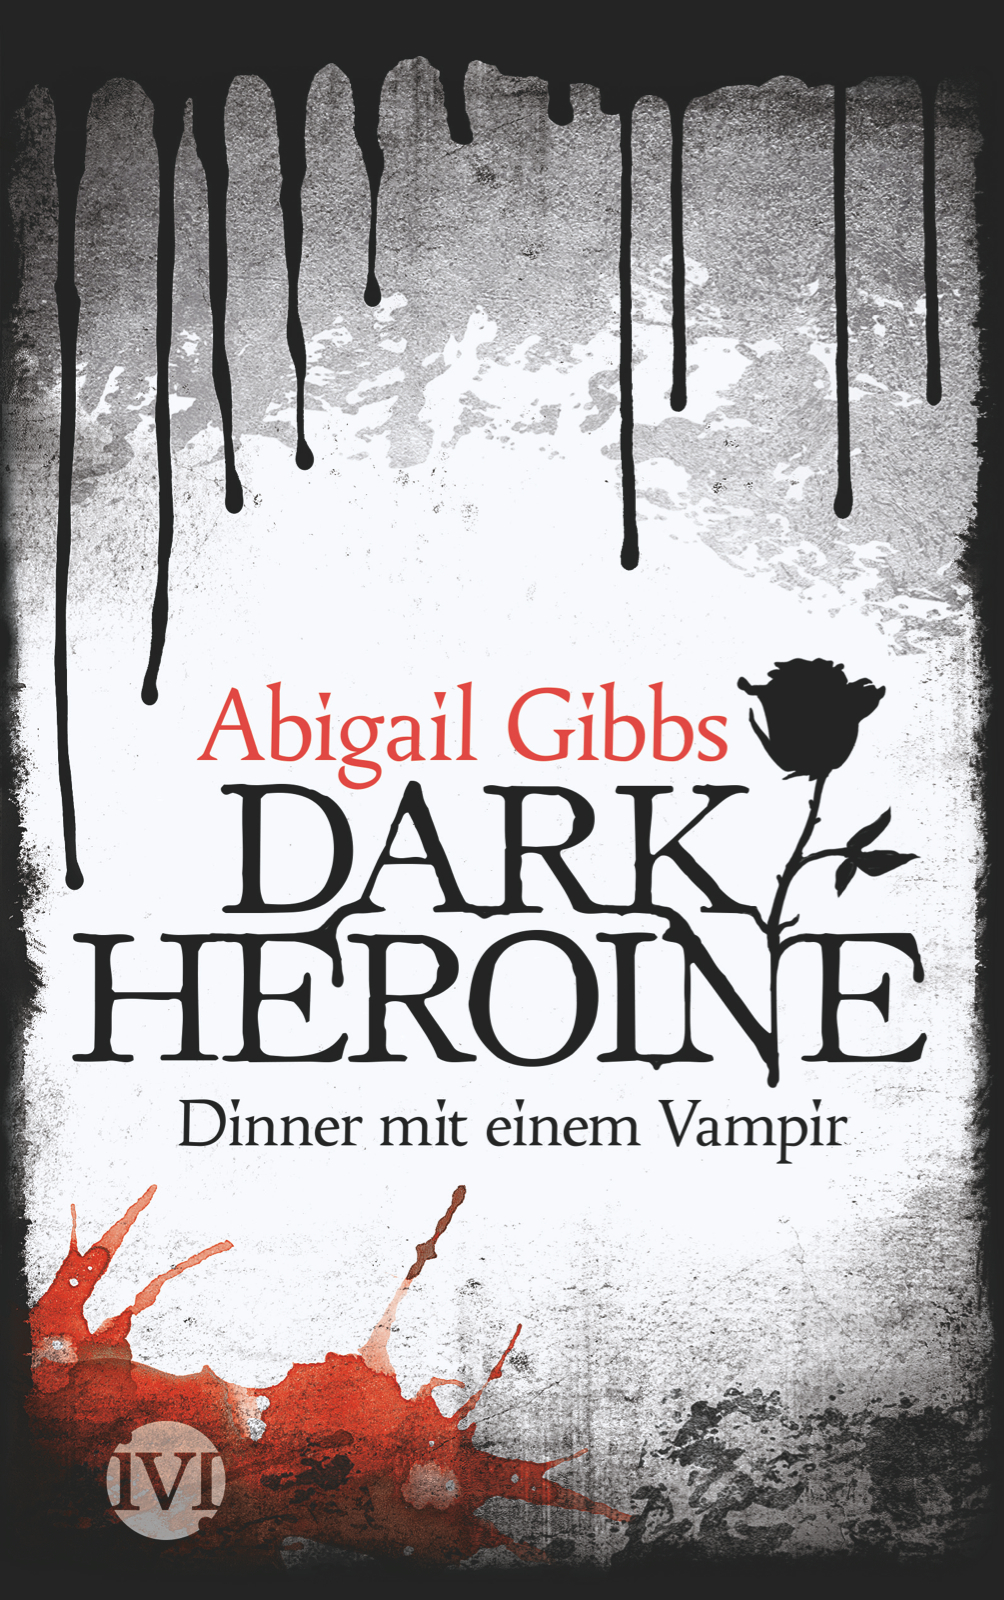 http://nothingbutn9erz.blogspot.co.at/2014/08/dark-heroine-dinner-mit-einem-vampir-abigail-gibbs.html